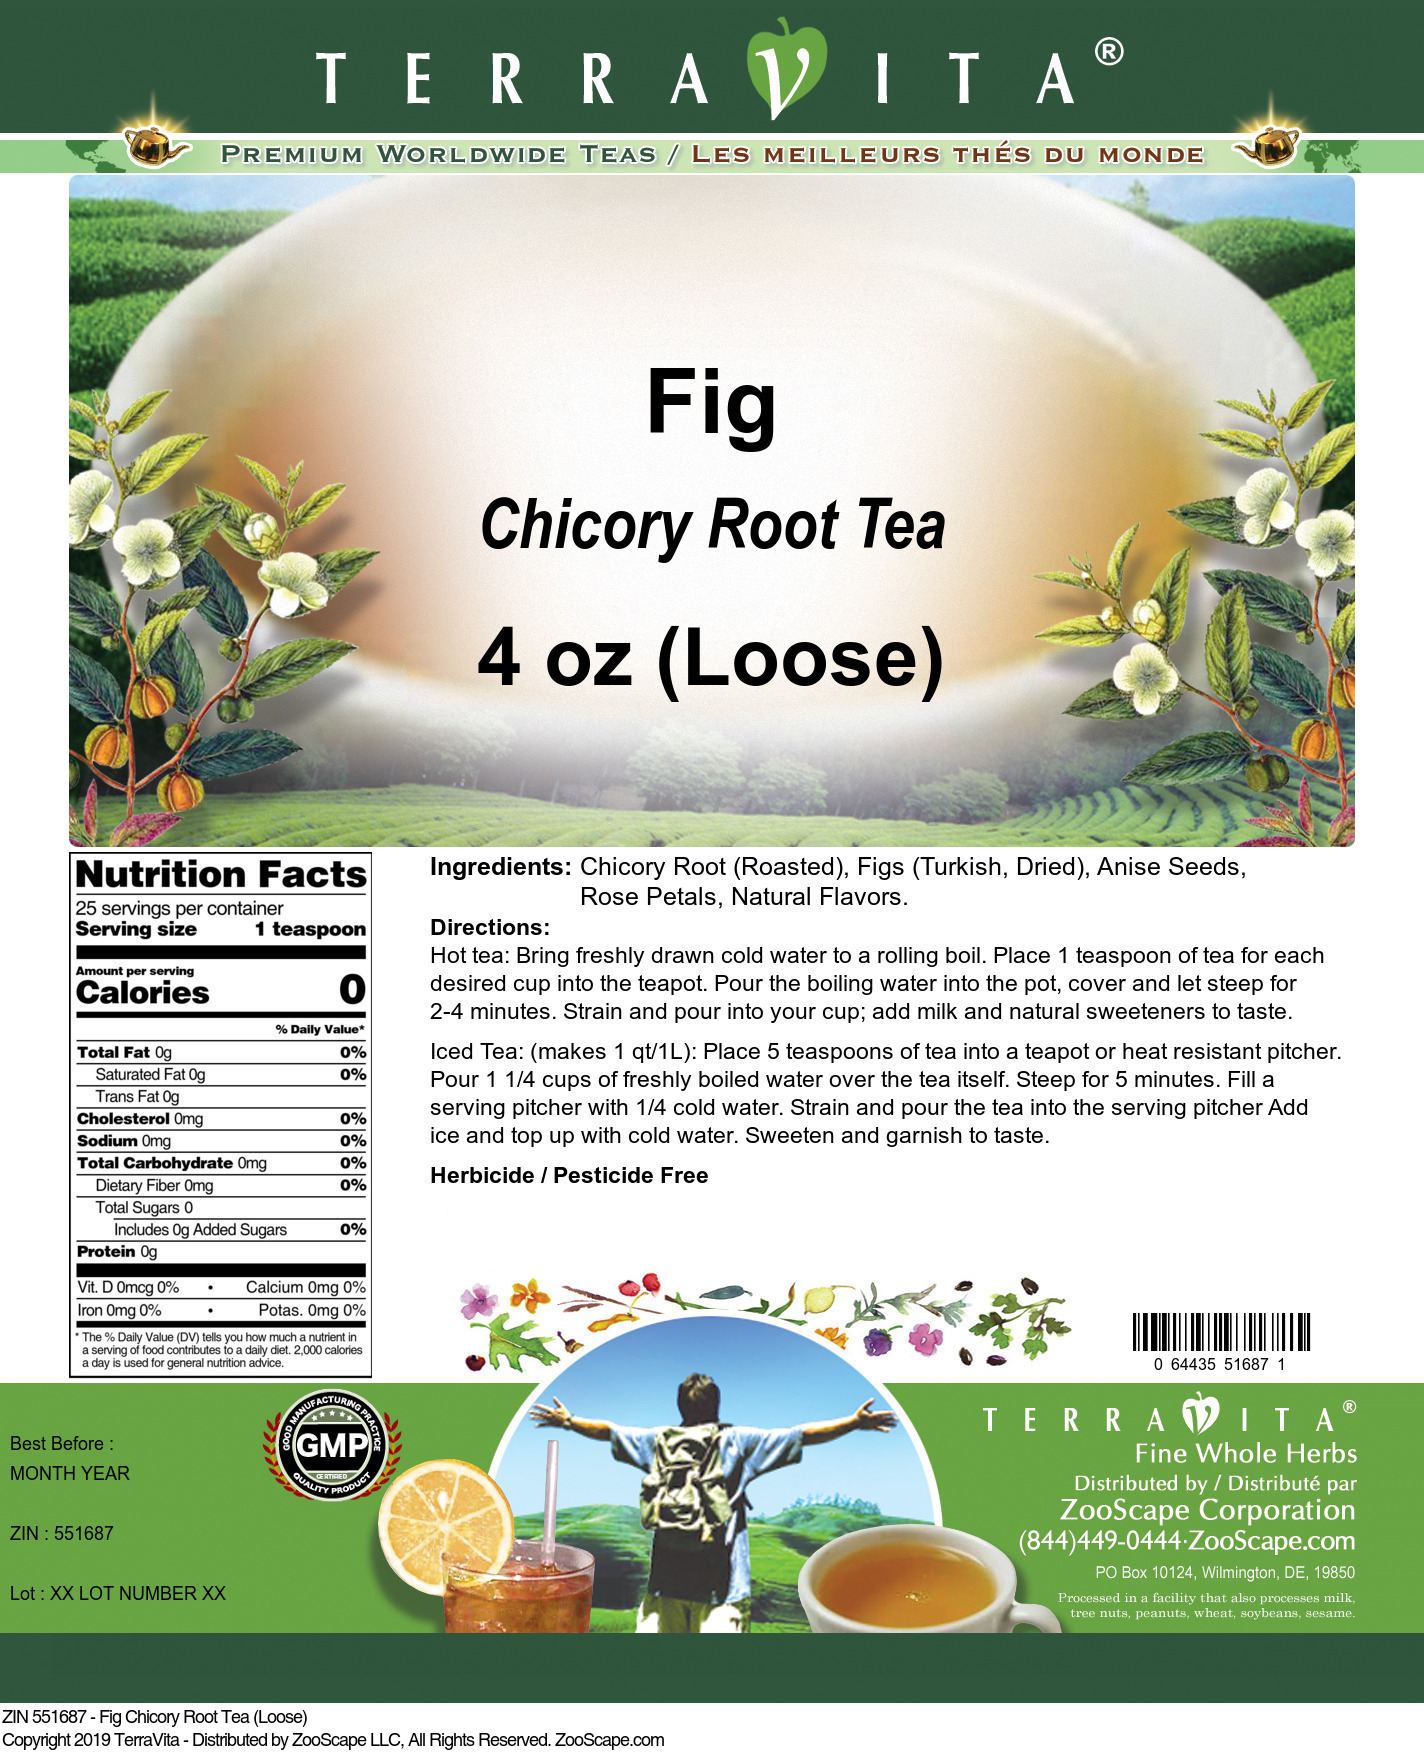 Fig Chicory Root Tea (Loose)